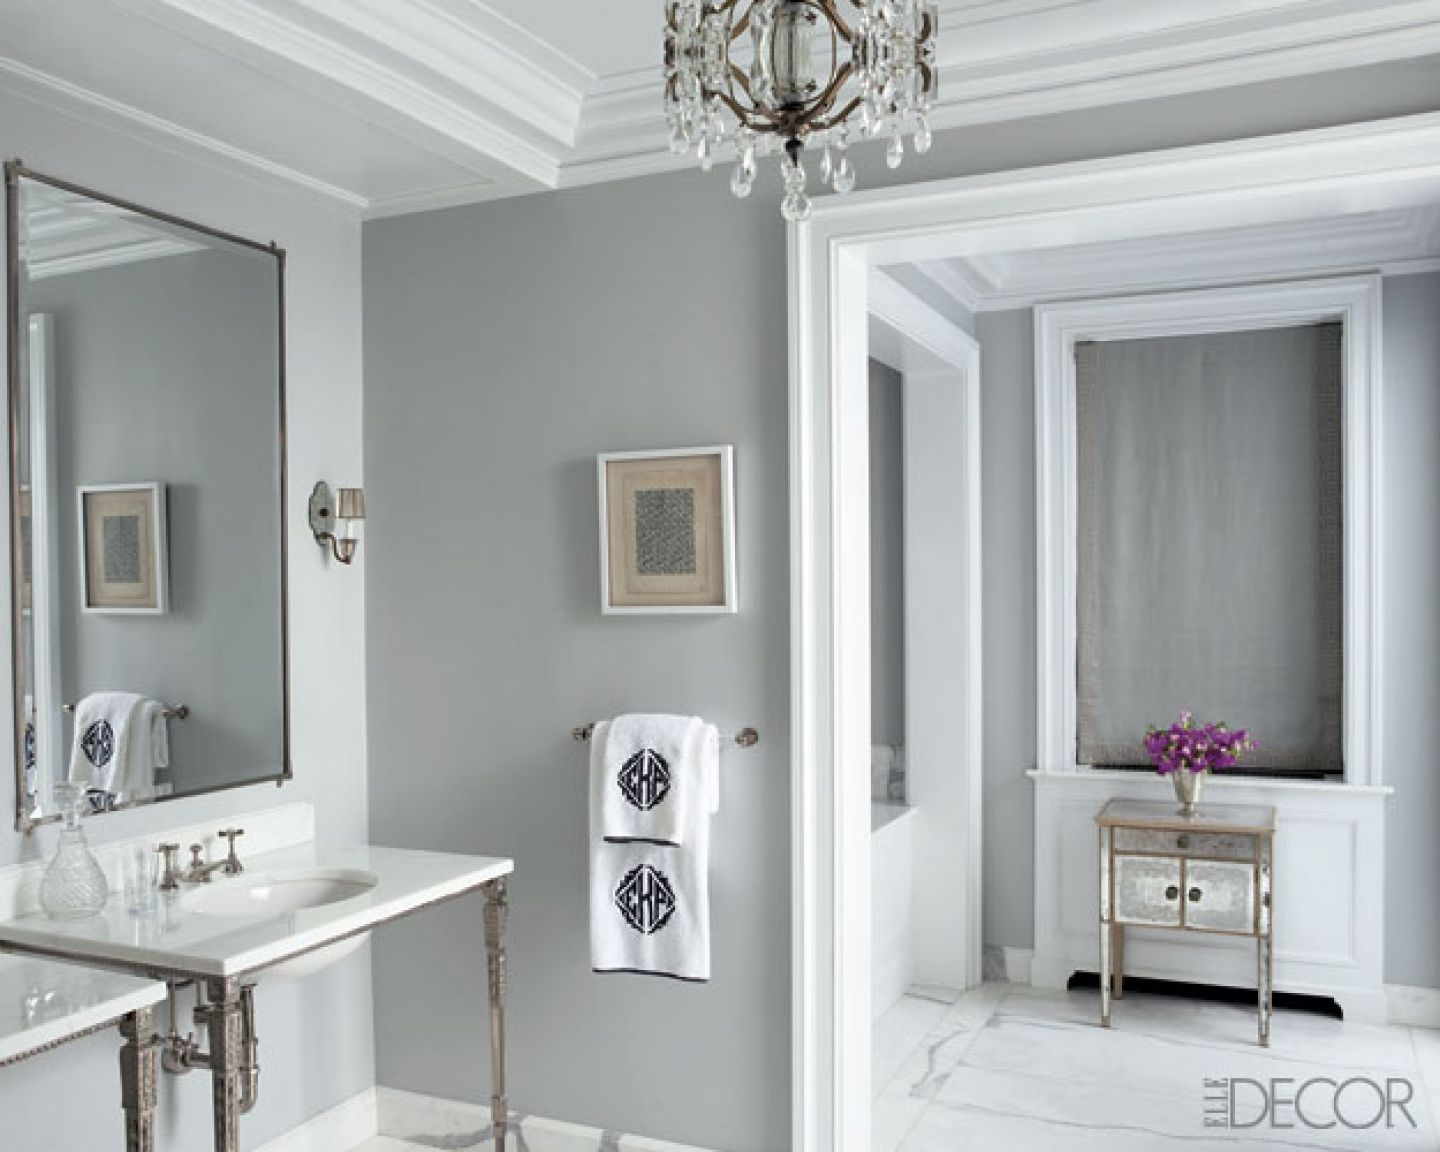 Grey bathroom color ideas - Elegant Bathroom Paint Idea With Grey Painted Wall And White Borders Also Two Sink Consoles With